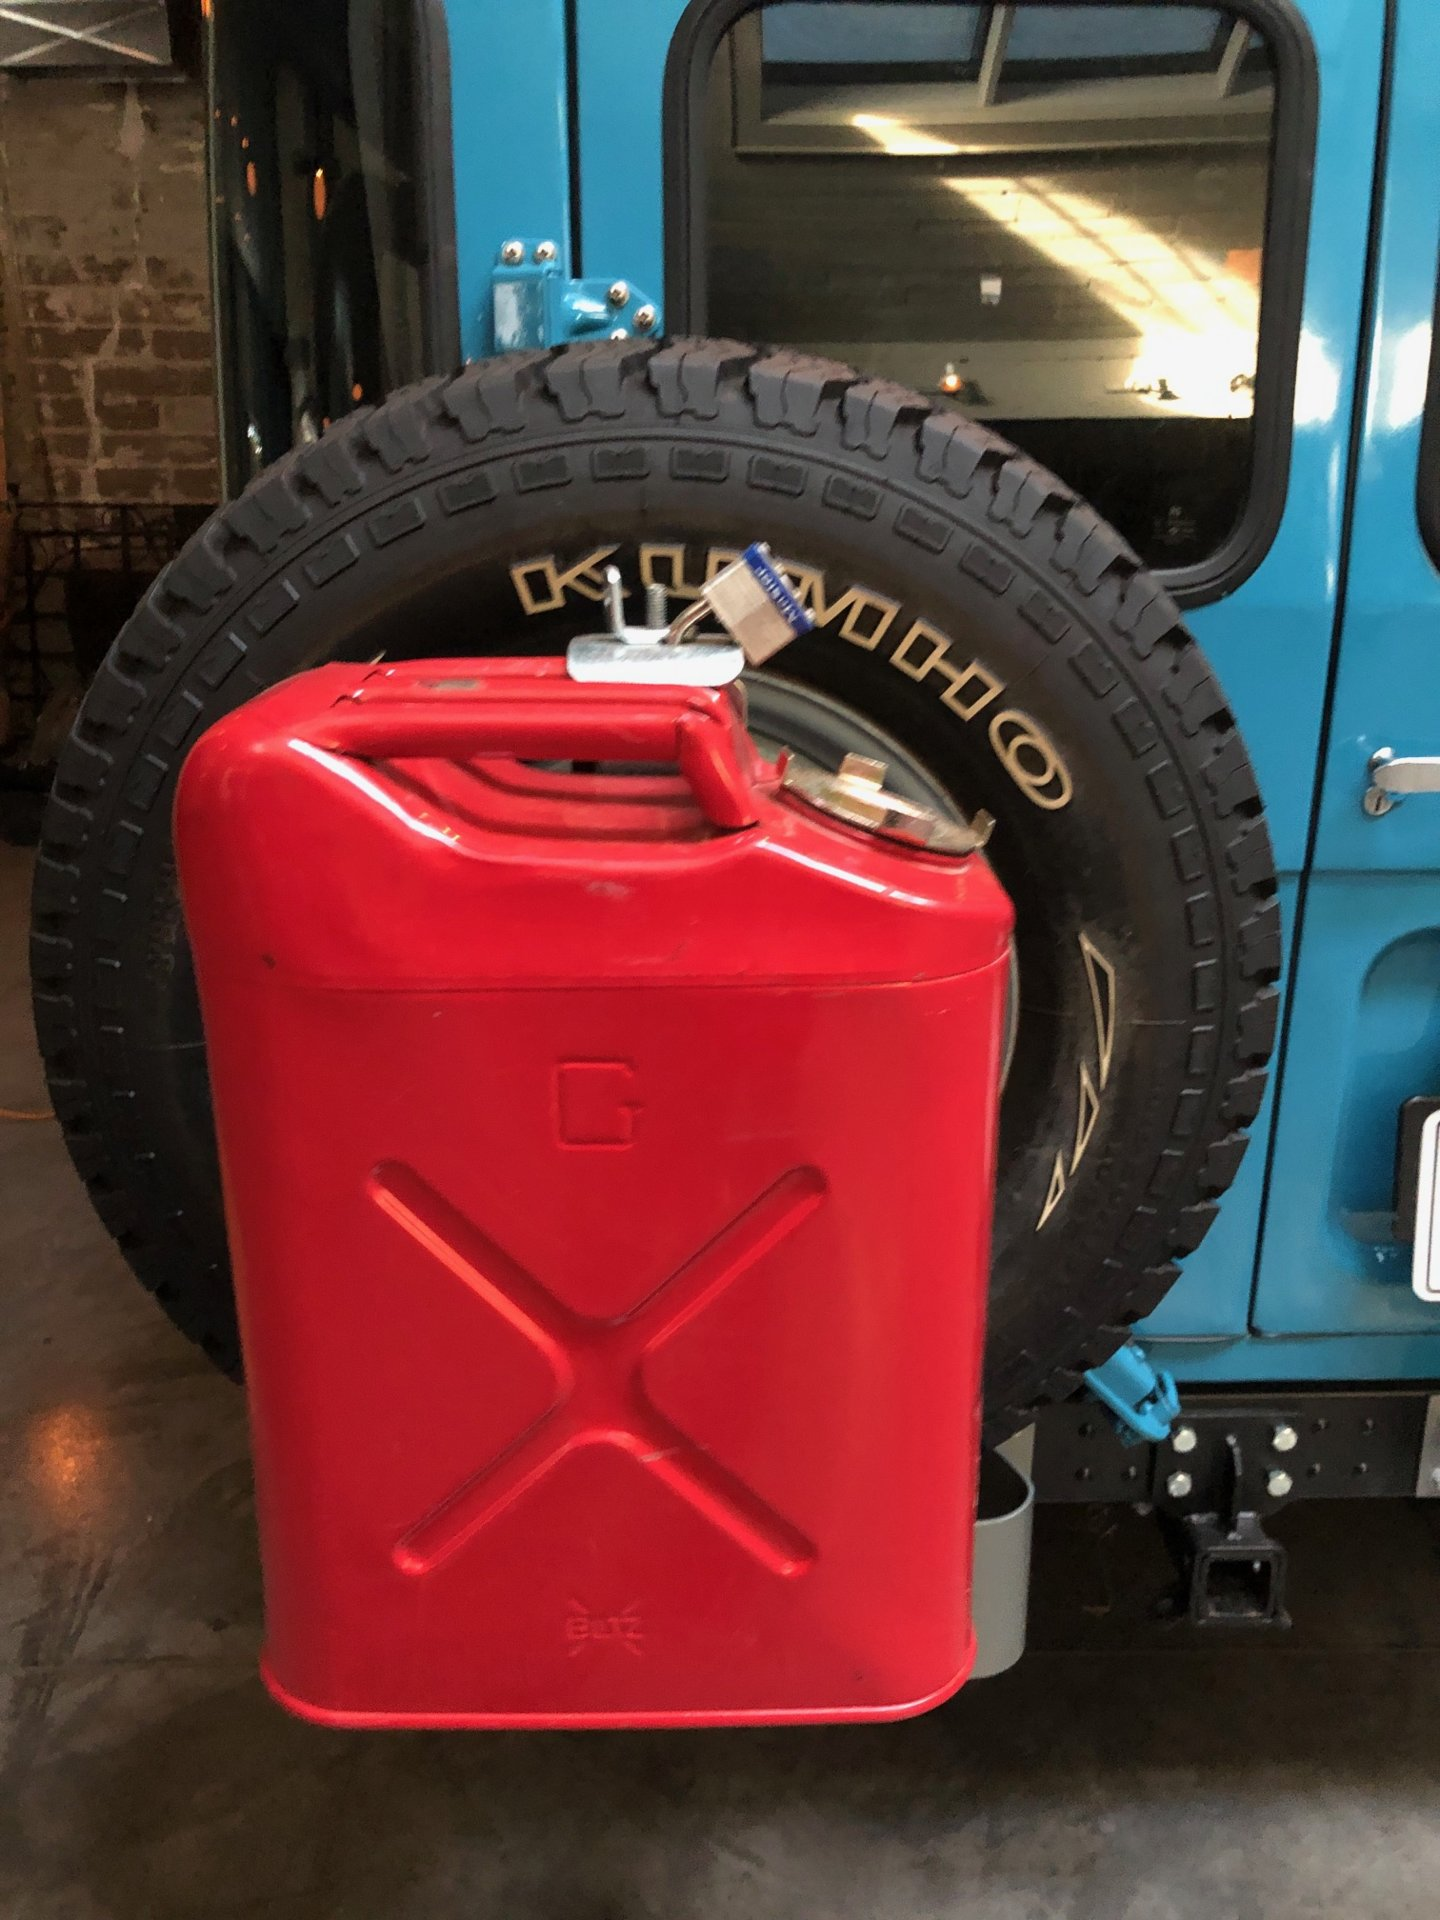 Spare Tire Jerry Can Mount : spare, jerry, mount, Holder, Spare, Direct, Mount, IH8MUD, Forum